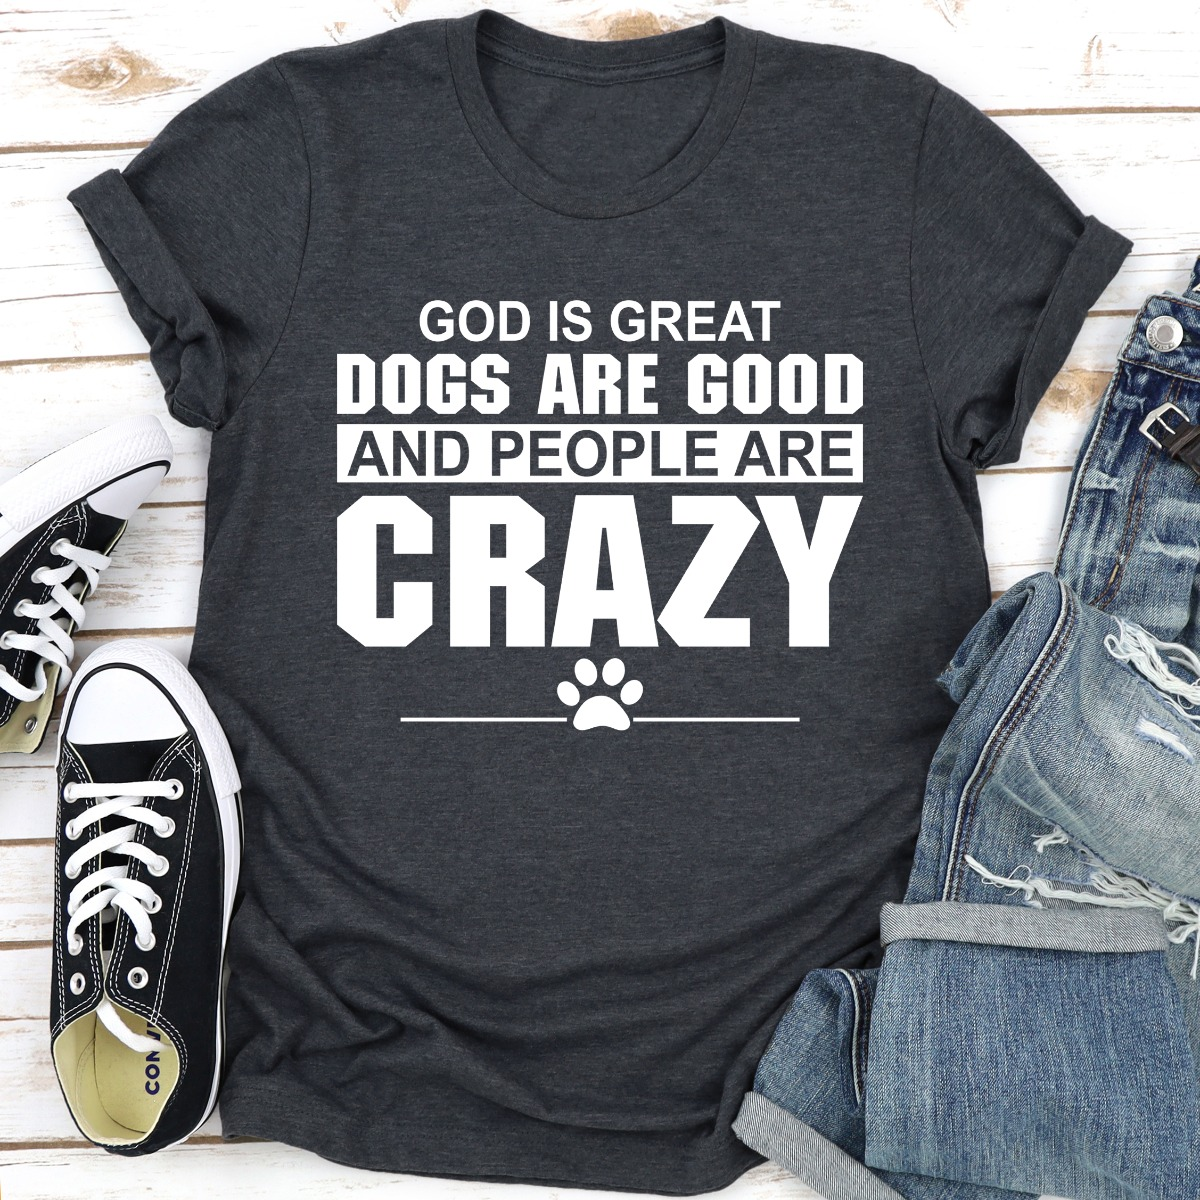 God Is Great Dogs Are Good And People Are Crazy (Dark Heather / 2Xl)